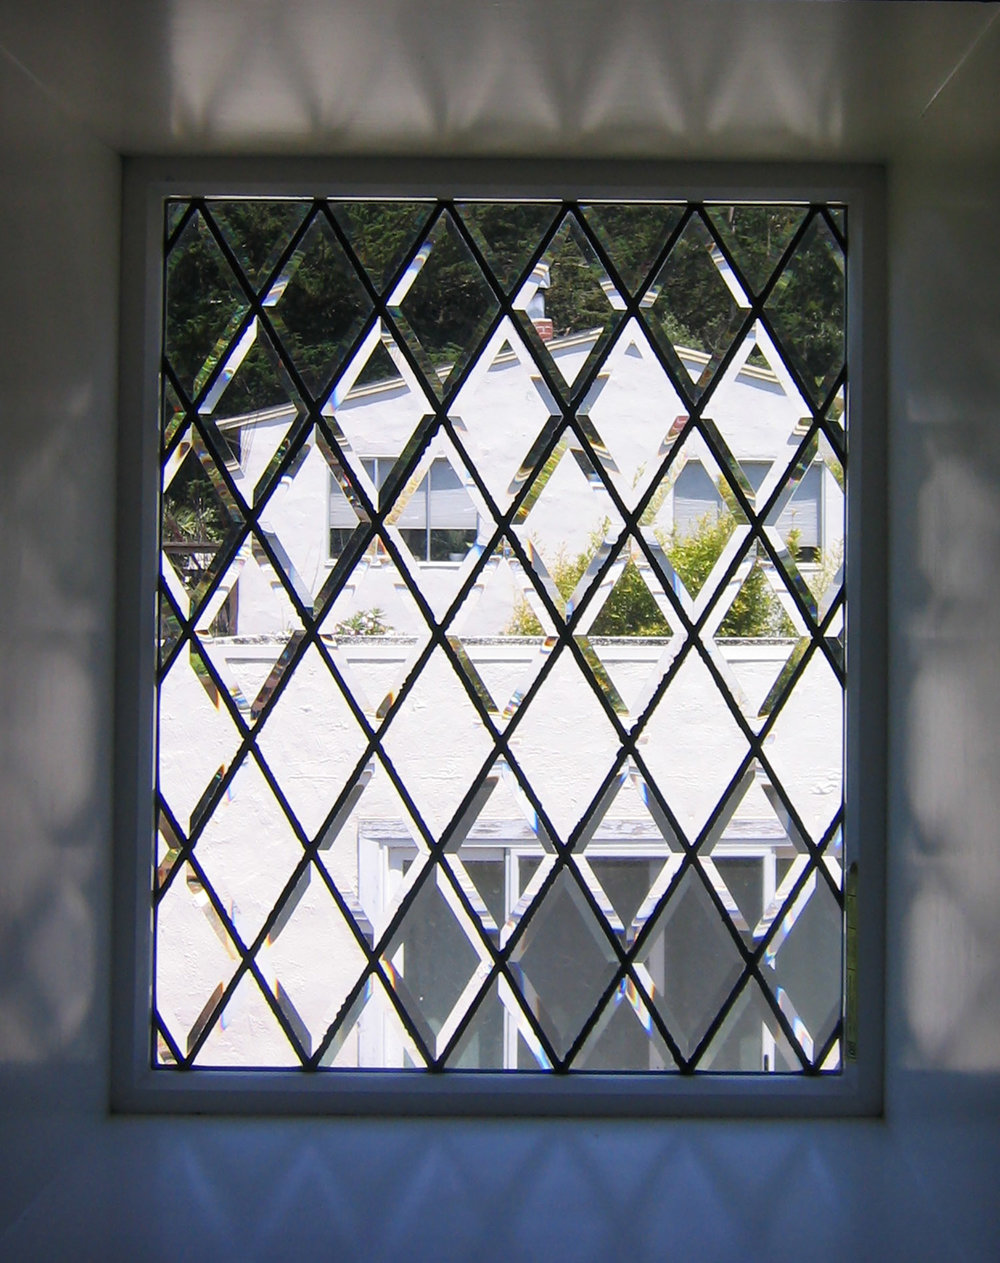 beveled diamond leaded glass stained glass window palo alto atherton california san francisco san jose legacy glass.jpg